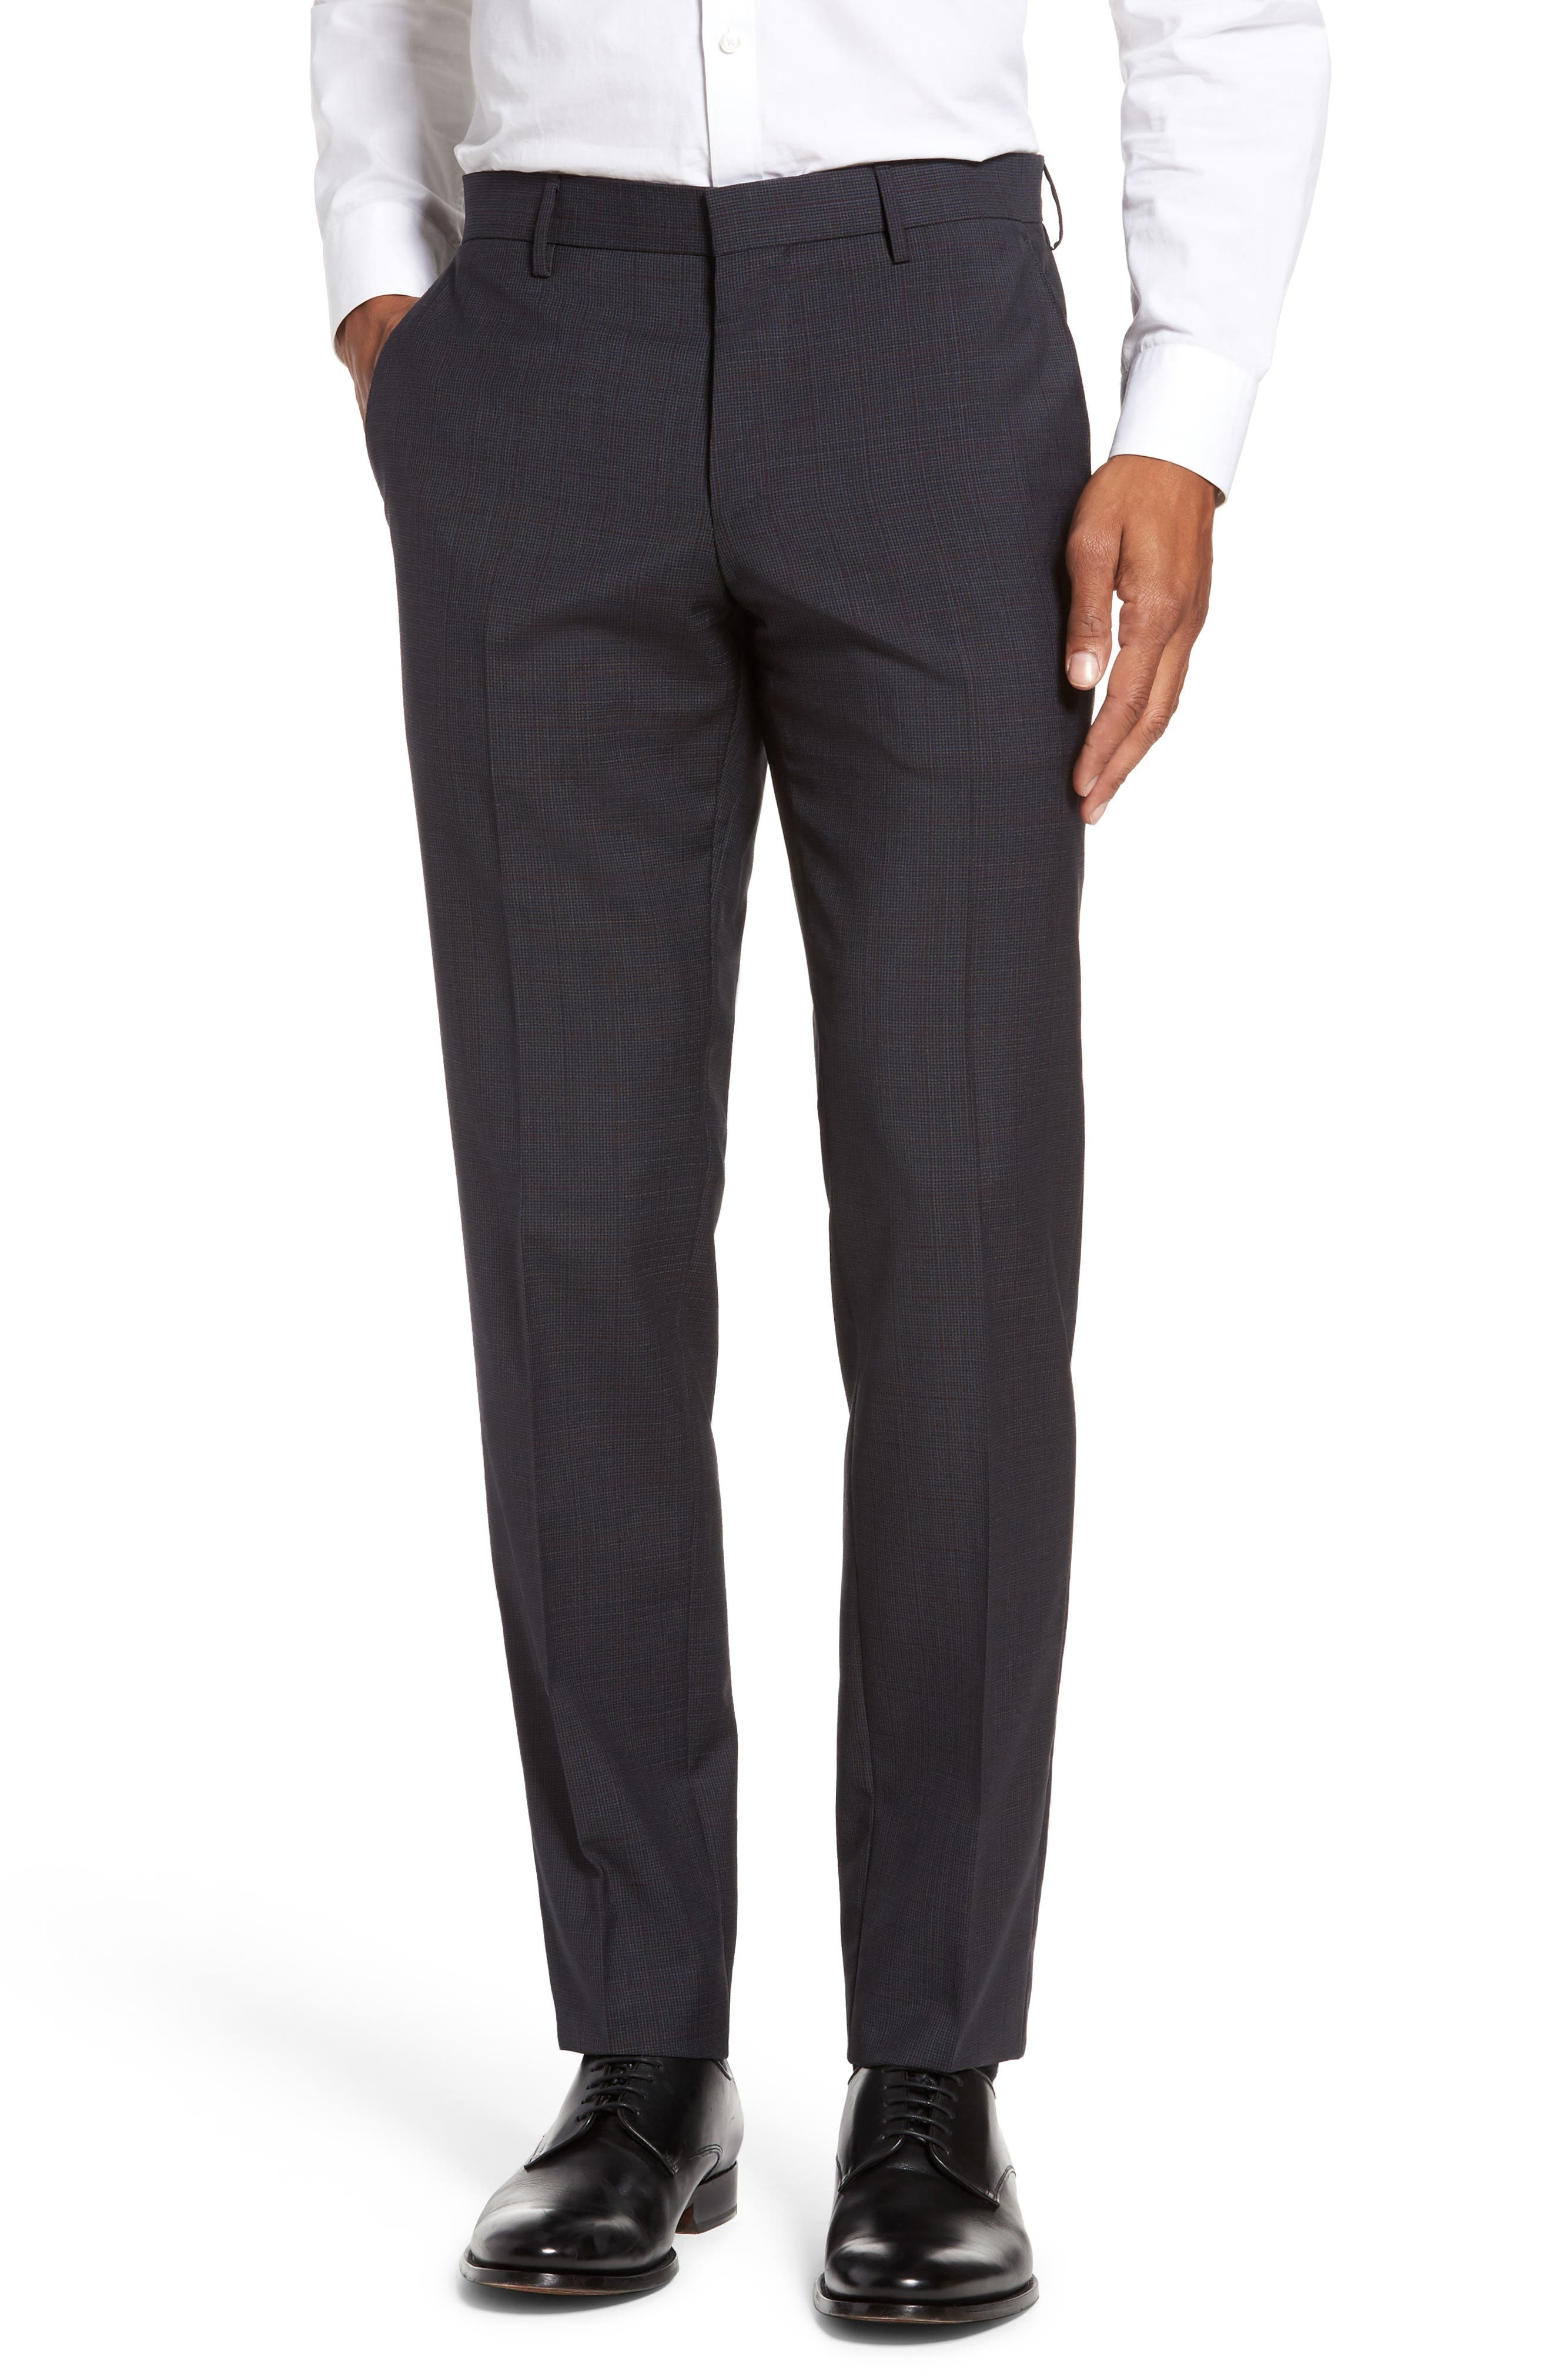 Benso Flat Front Houndstooth Wool Trousers,                         Main,                         color, Navy